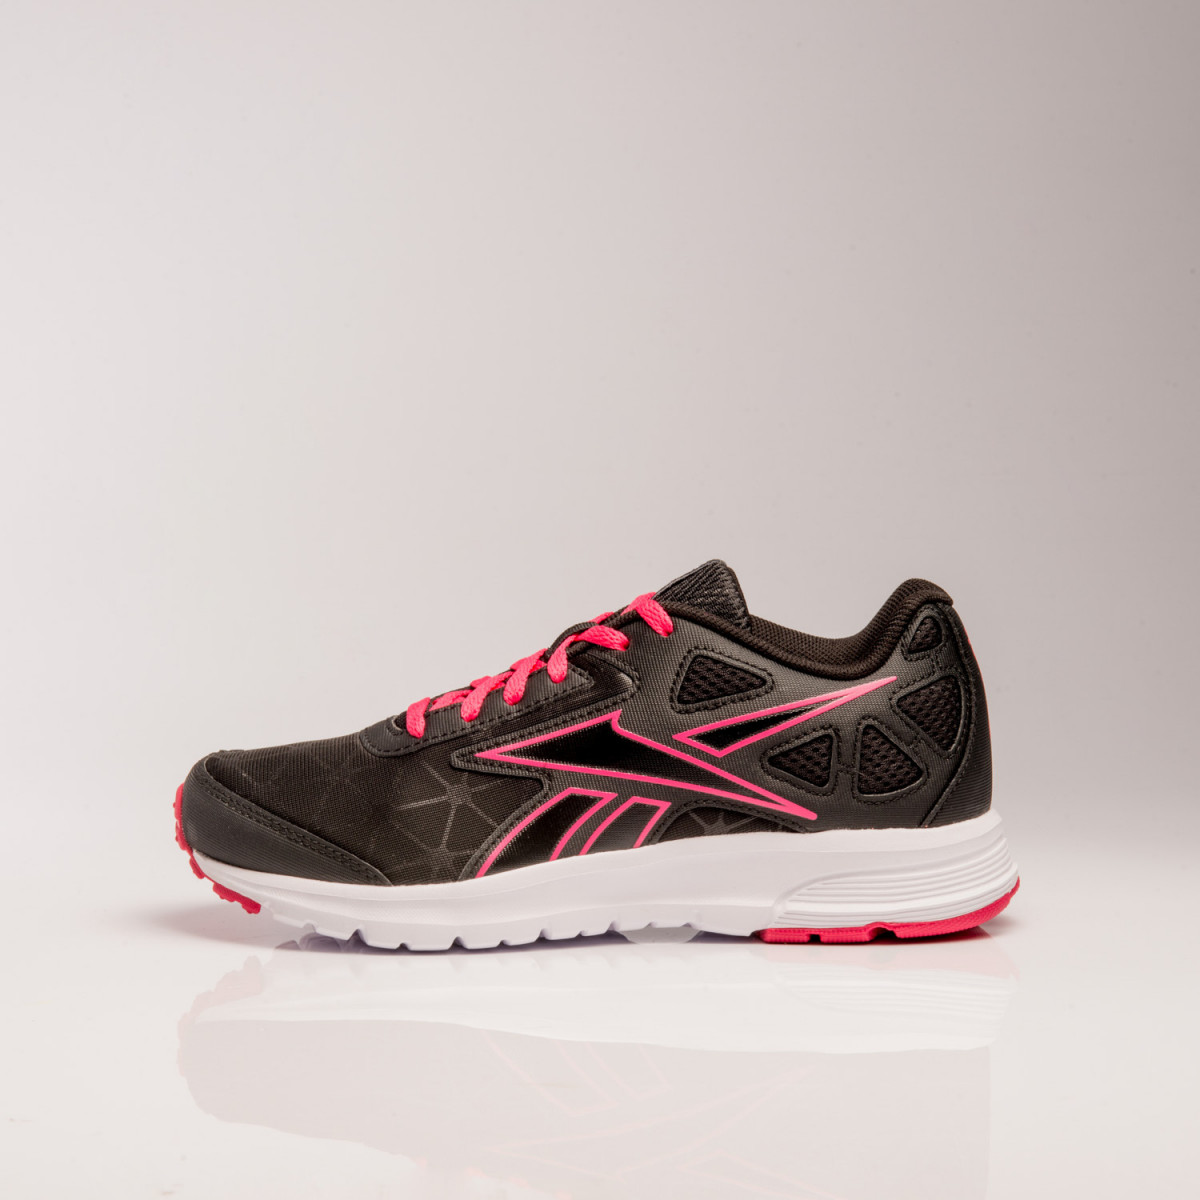 Zapatillas Reebok Rbk Dash Rs (W)